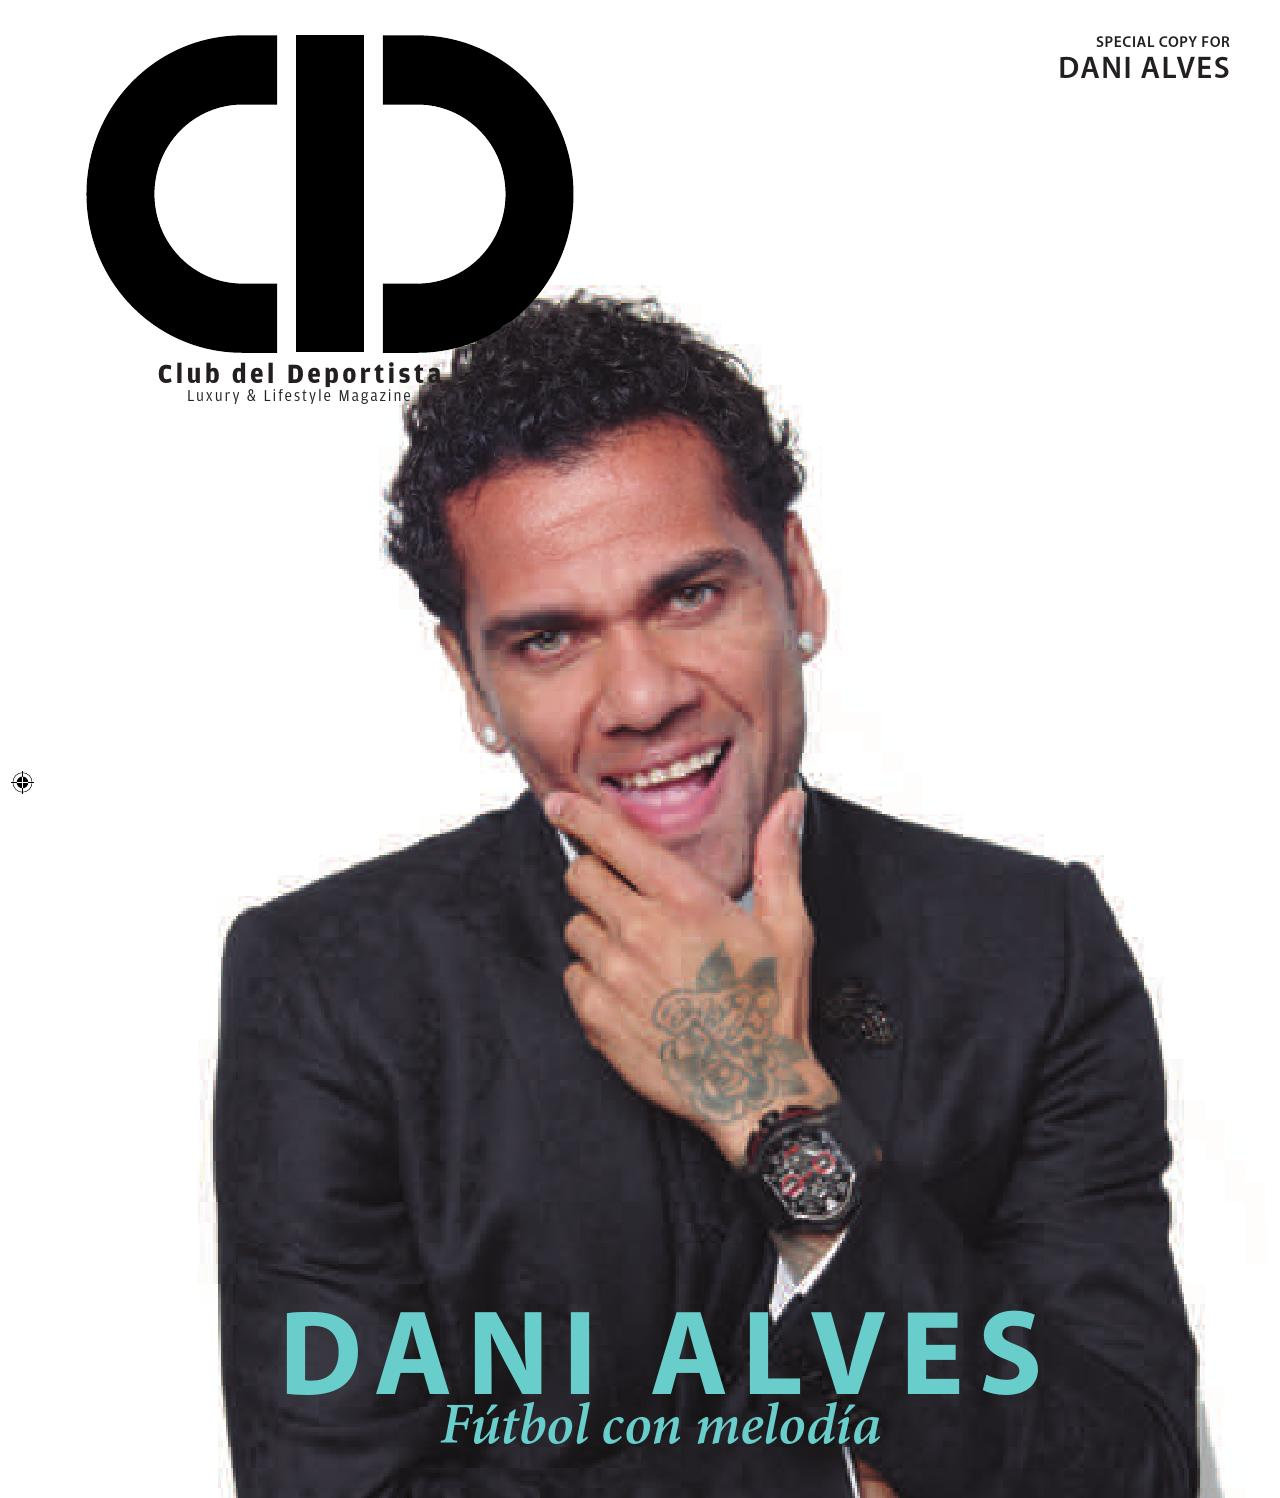 1e0498dbd Dani Alves by Club del Deportista - issuu